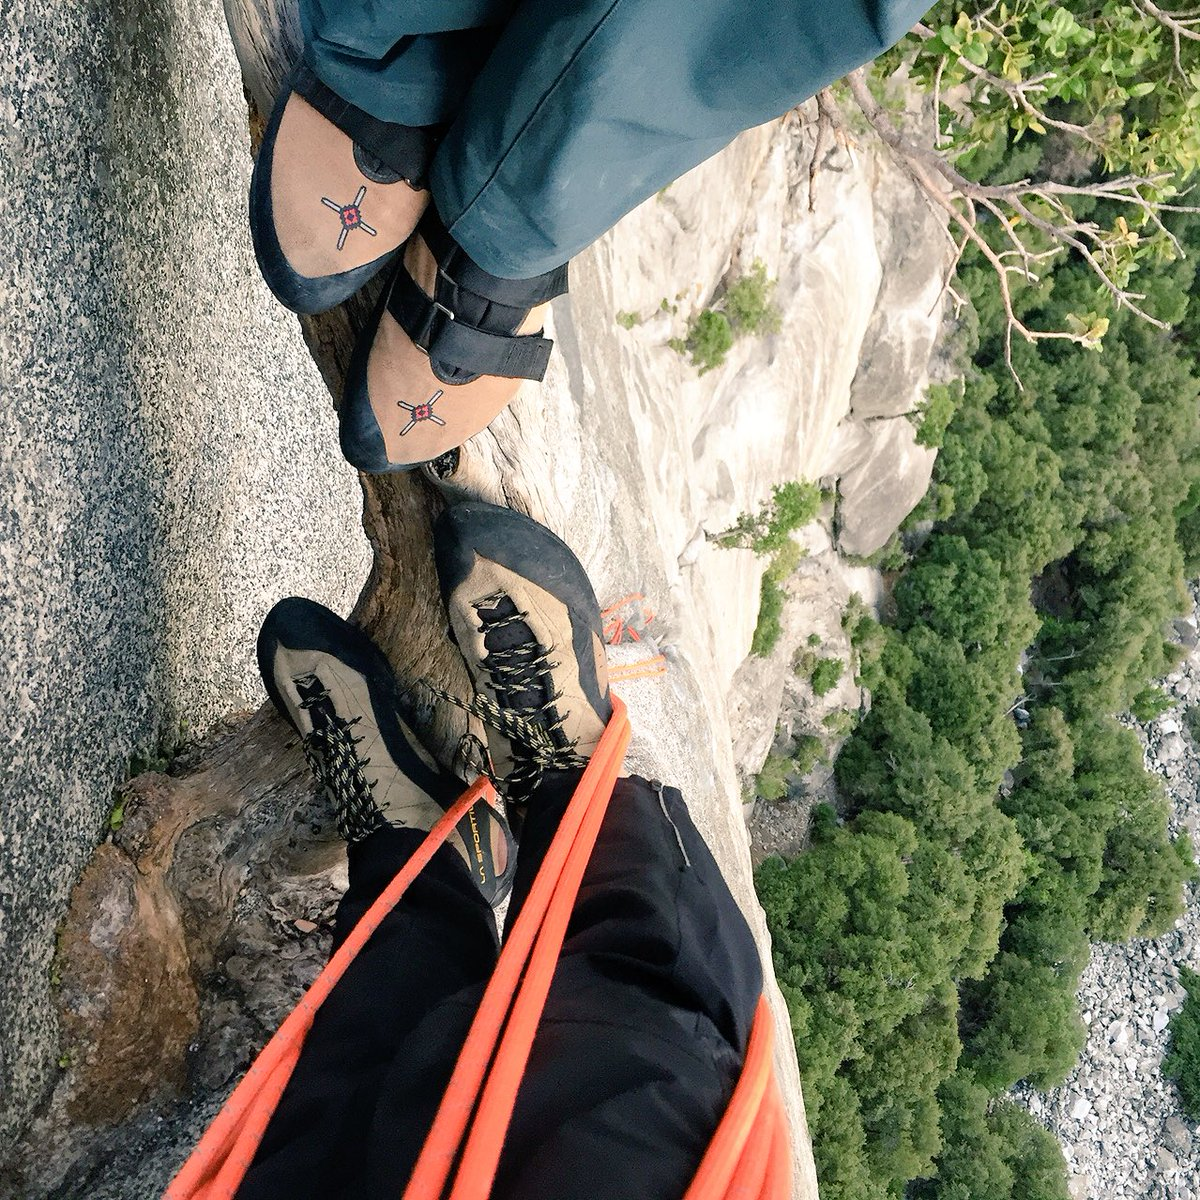 They should call this the tree of life. Climbing Serenity Crack in #yosemite with @kjorgeson https://t.co/G0er8Aq8UL